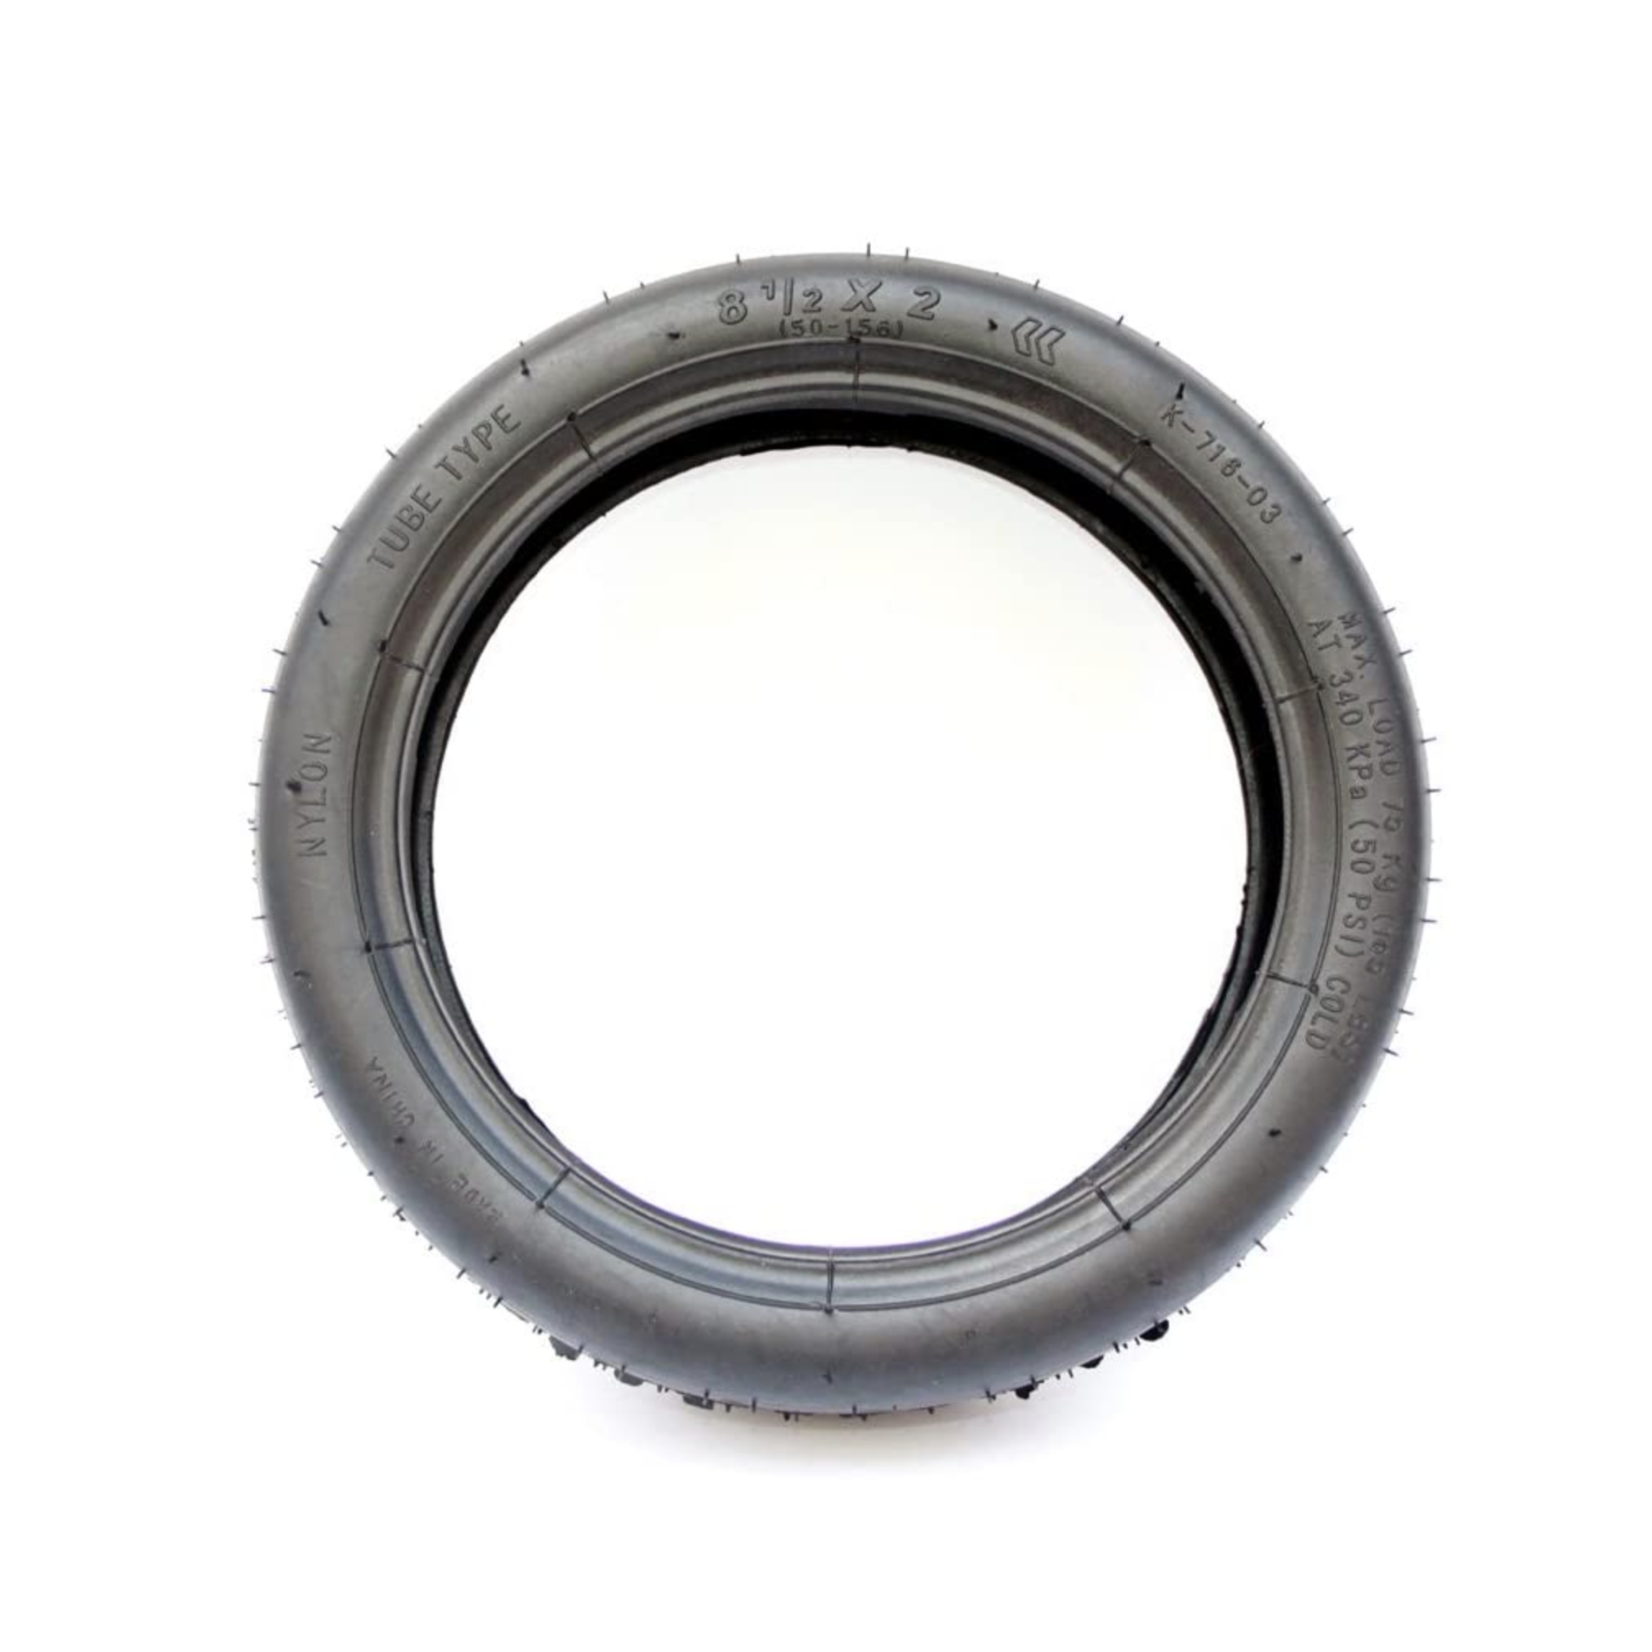 8 1/2 x 2 Scooter Tire